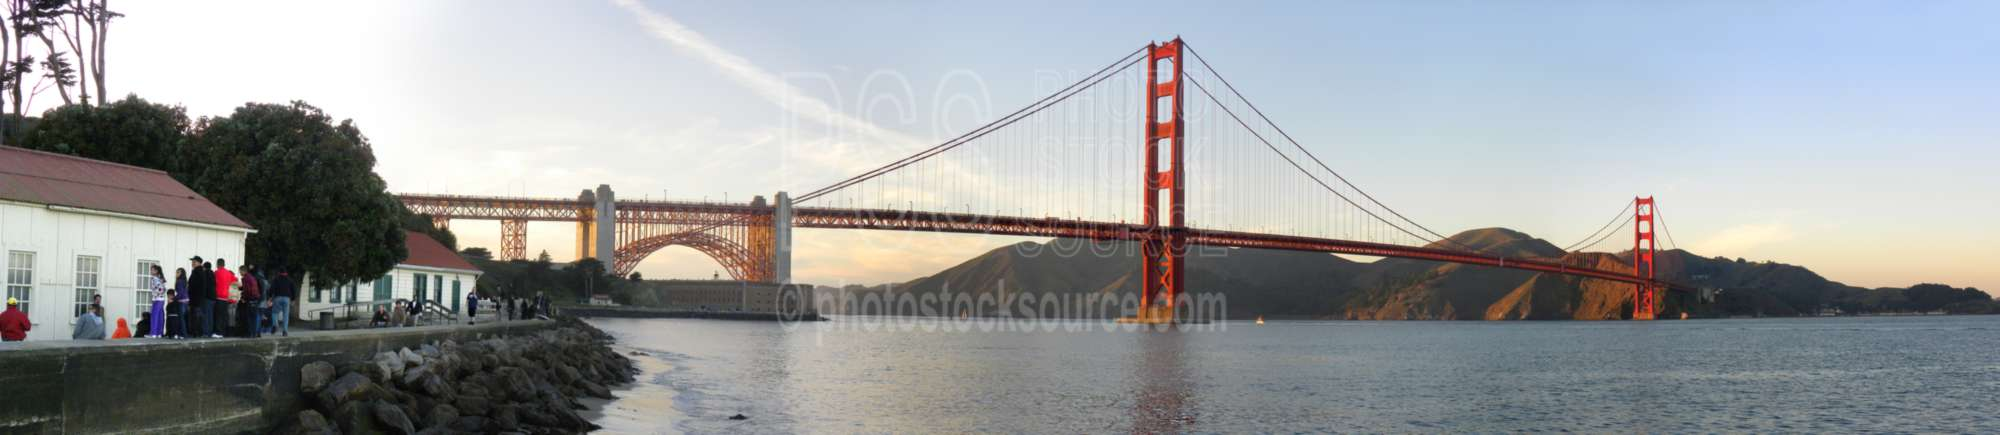 Golden Gate Bridge,bridge,landmark,bay,san francisco bay,suspension bridge,bridges,bridges panoramas,cities panoramas